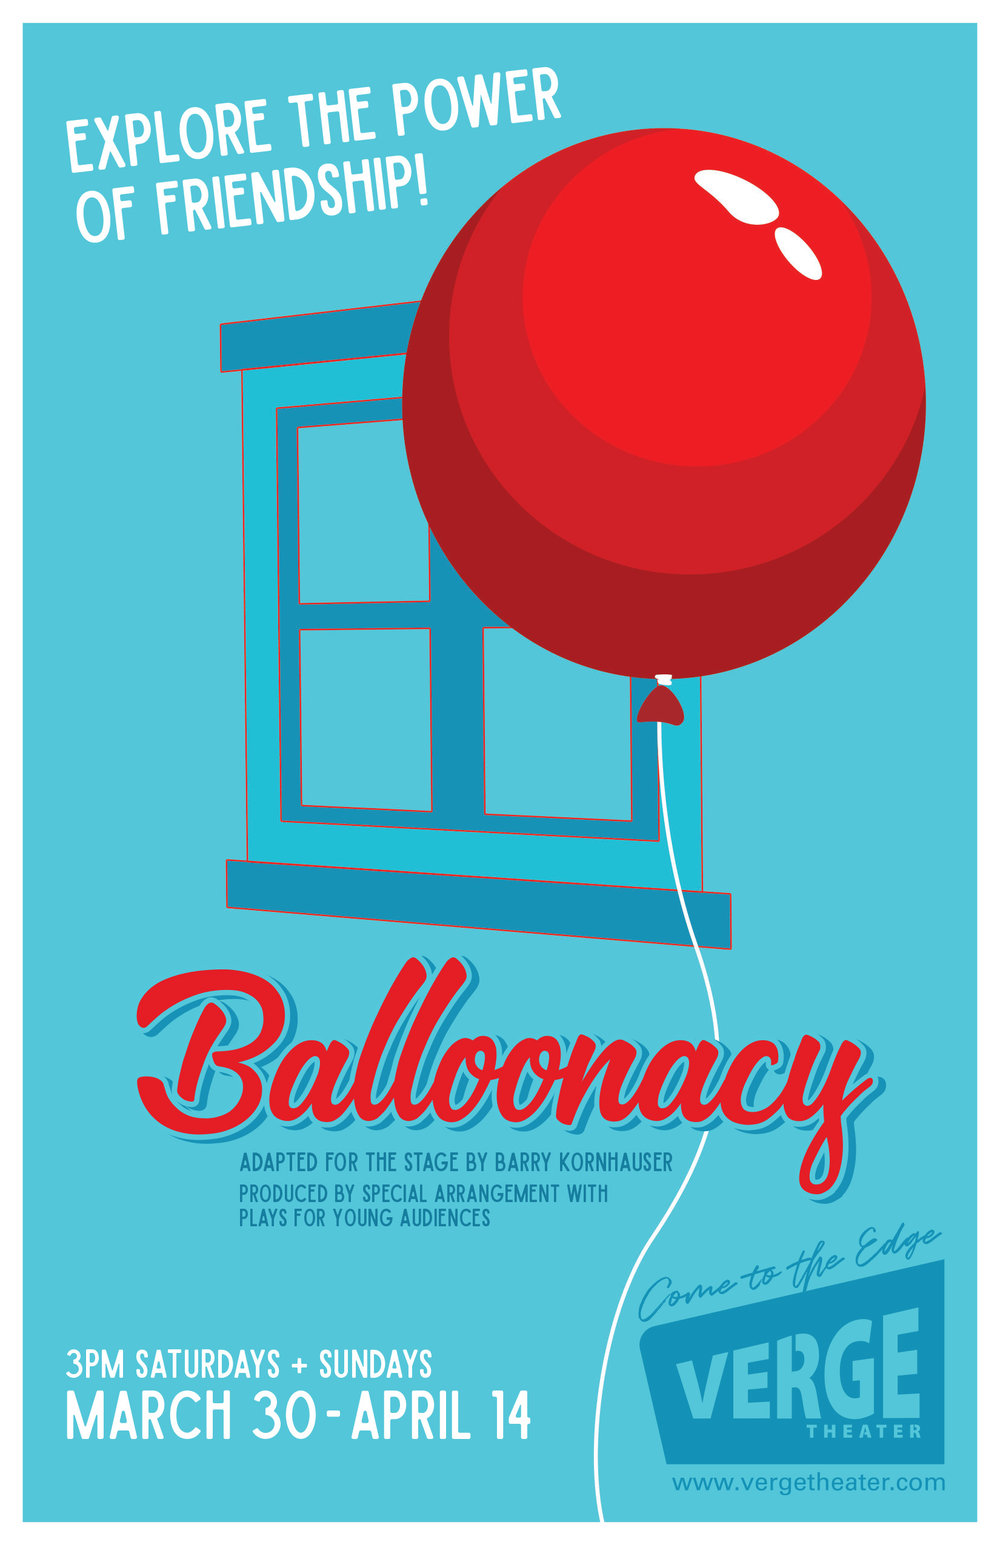 Balloonacy 11 x 17 for website.jpg